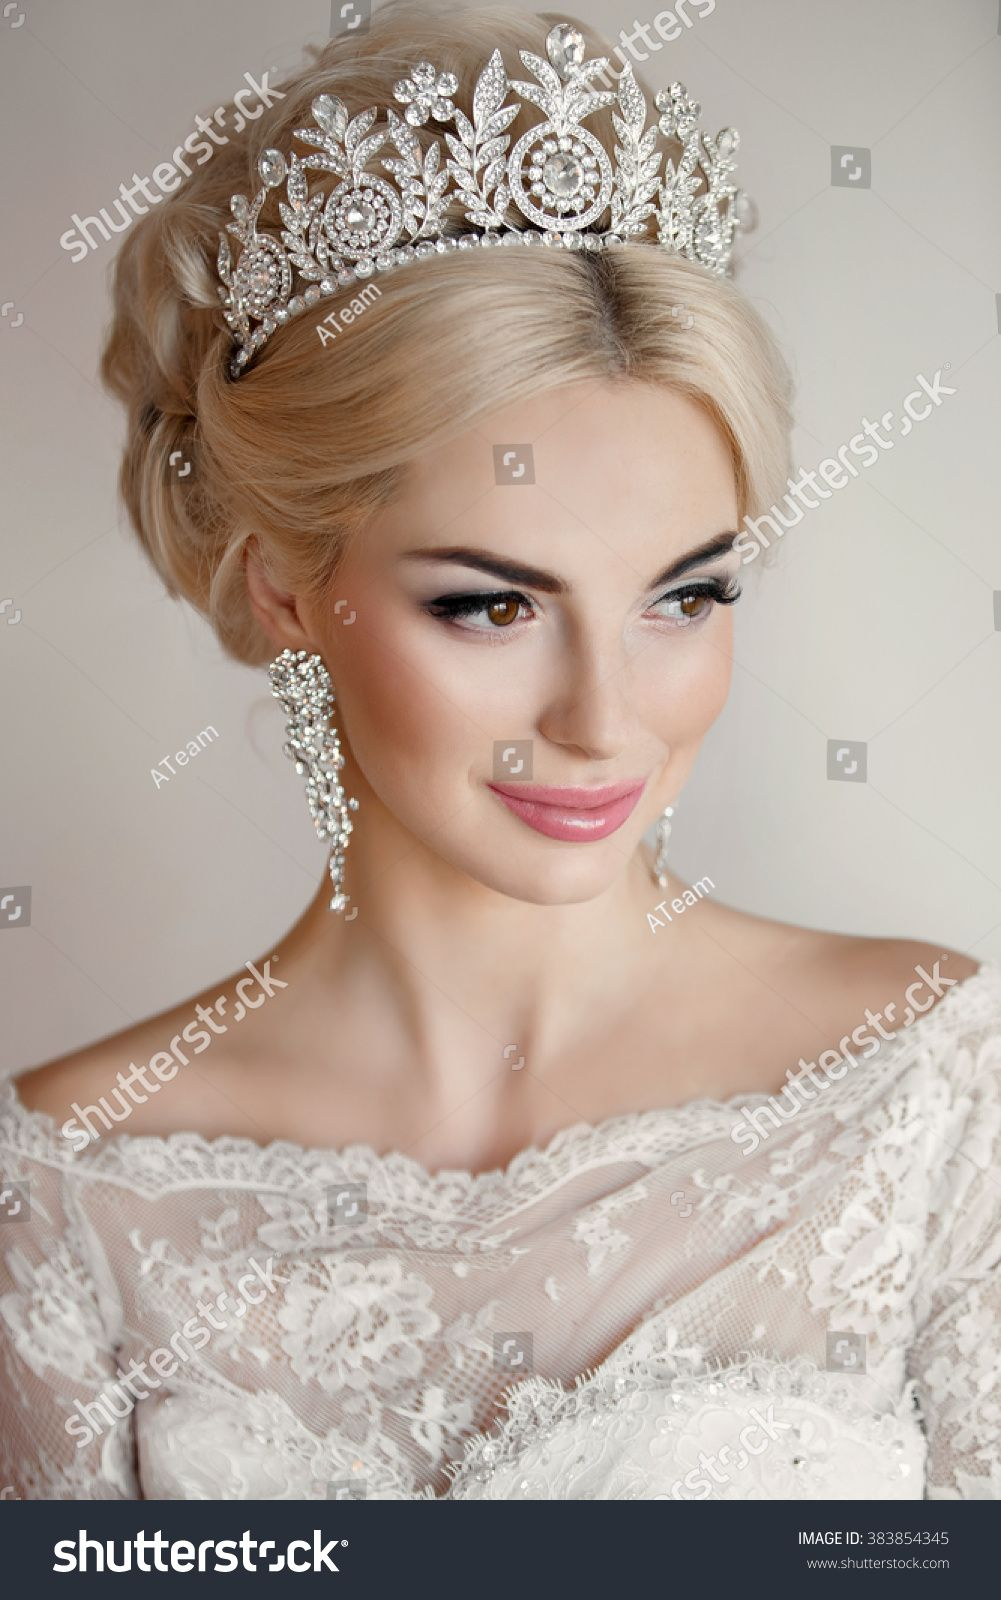 beautiful bride portrait wedding makeup and hairstyle with